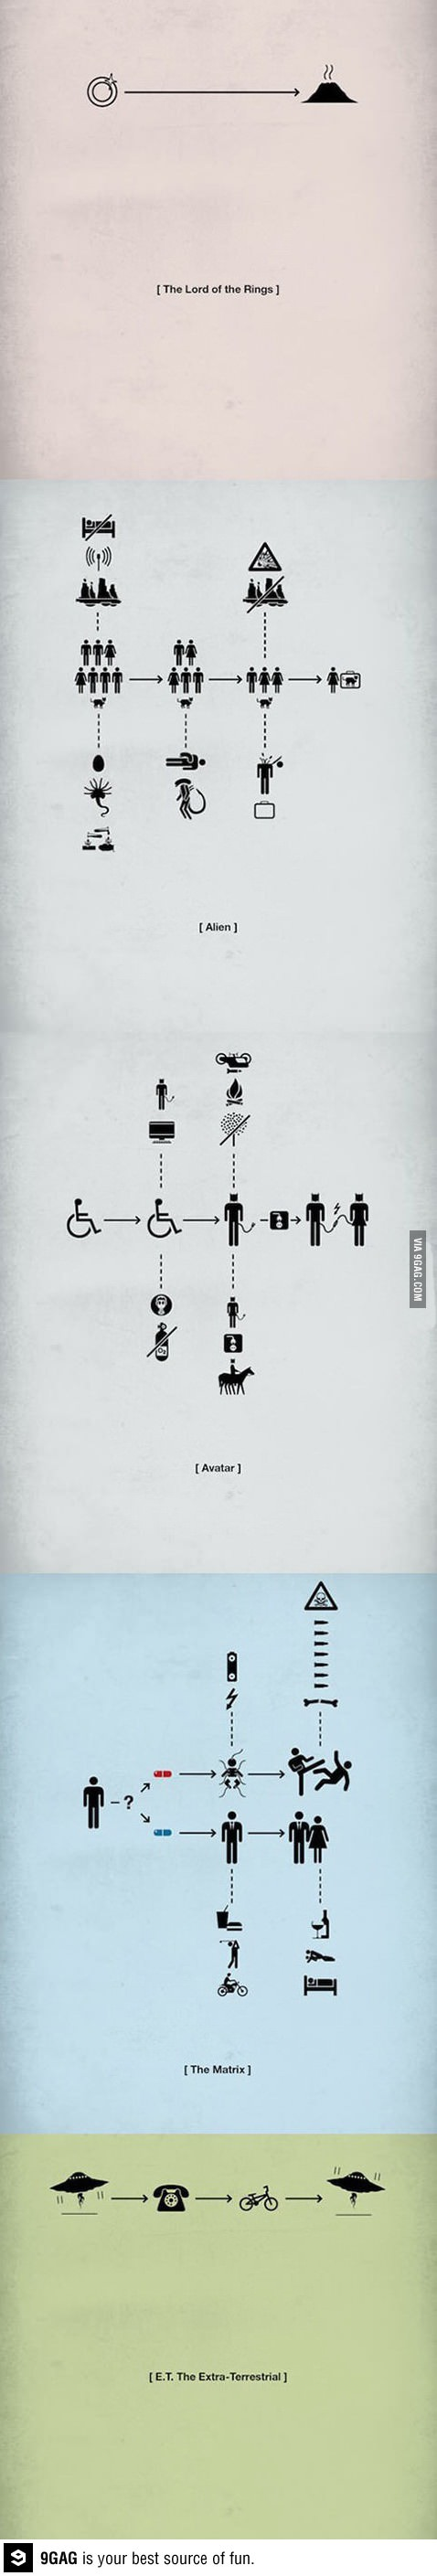 Movies depicted through pictograms